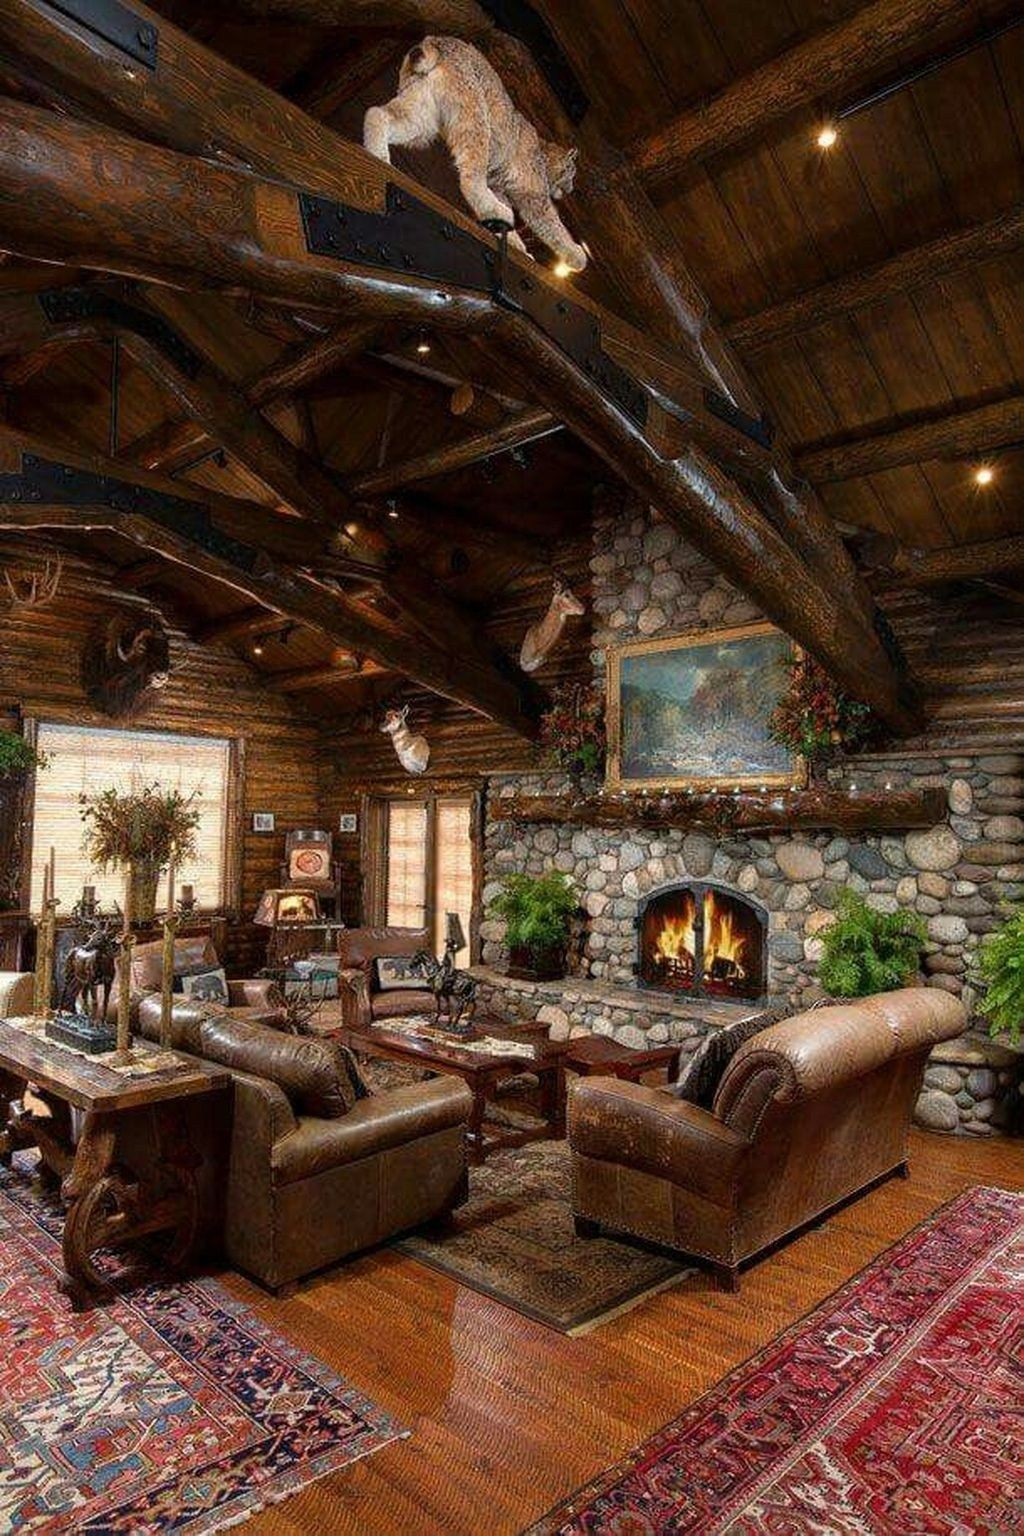 46 amazing lodge living room decorating ideas in 2020